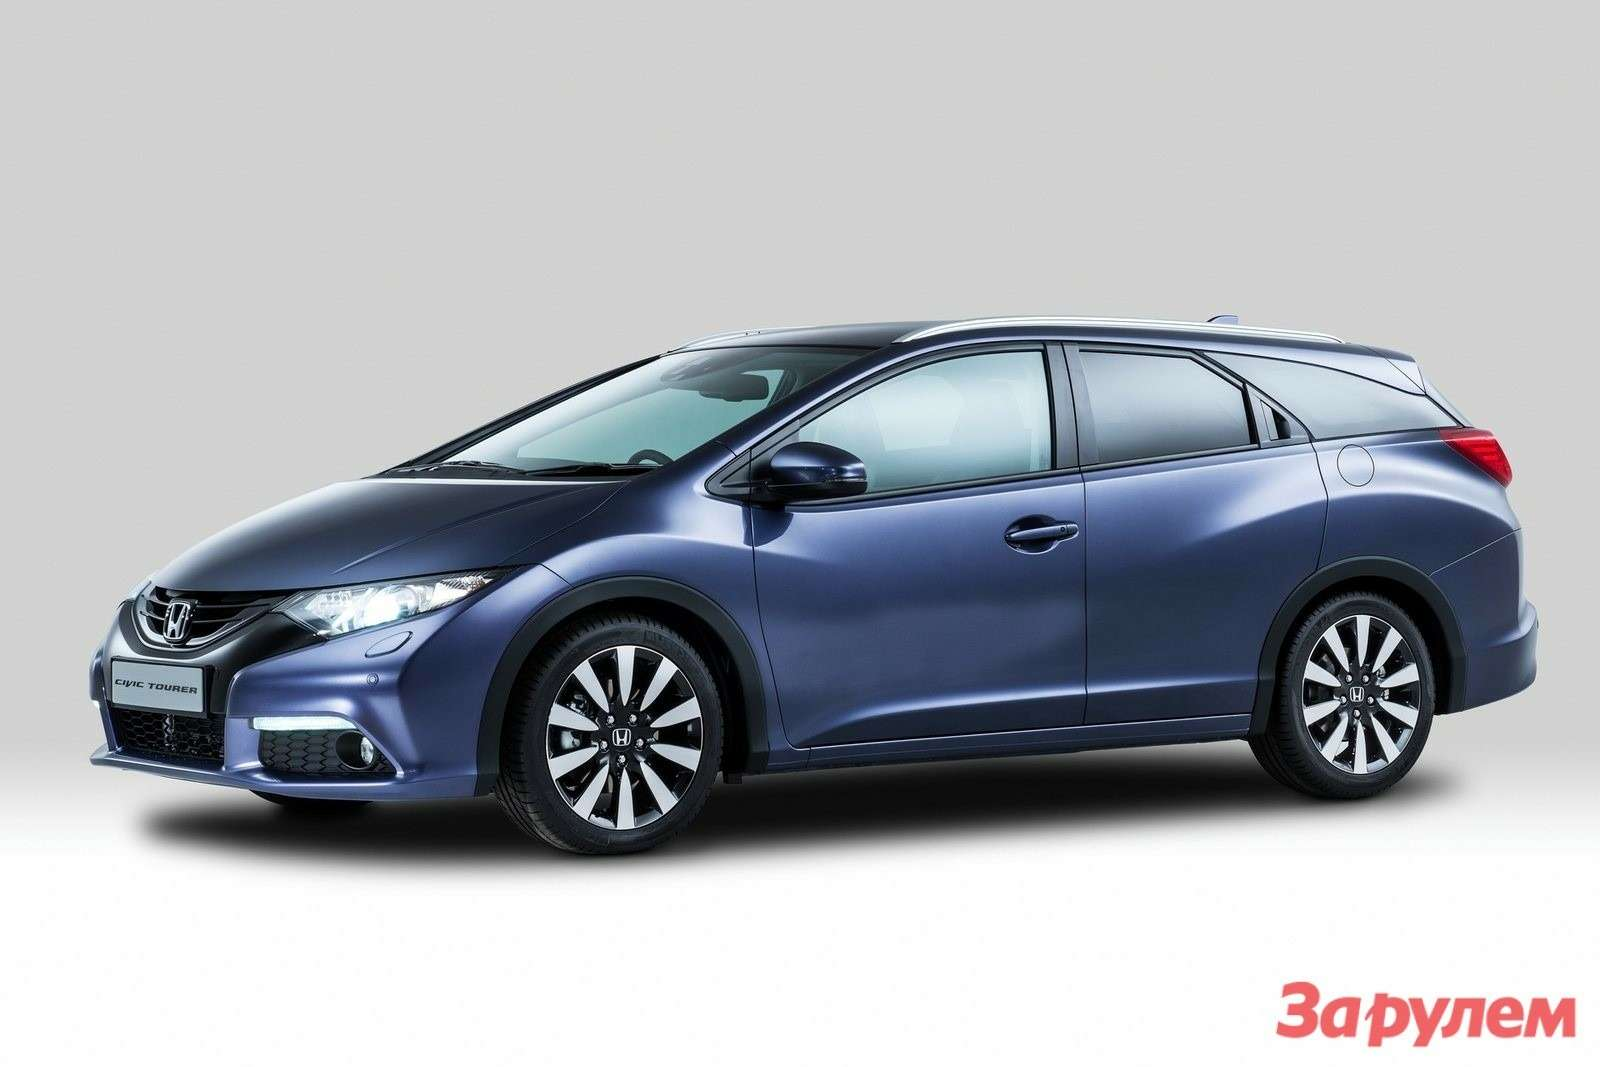 Honda Civic Tourer 2014 1600x1200 wallpaper 01